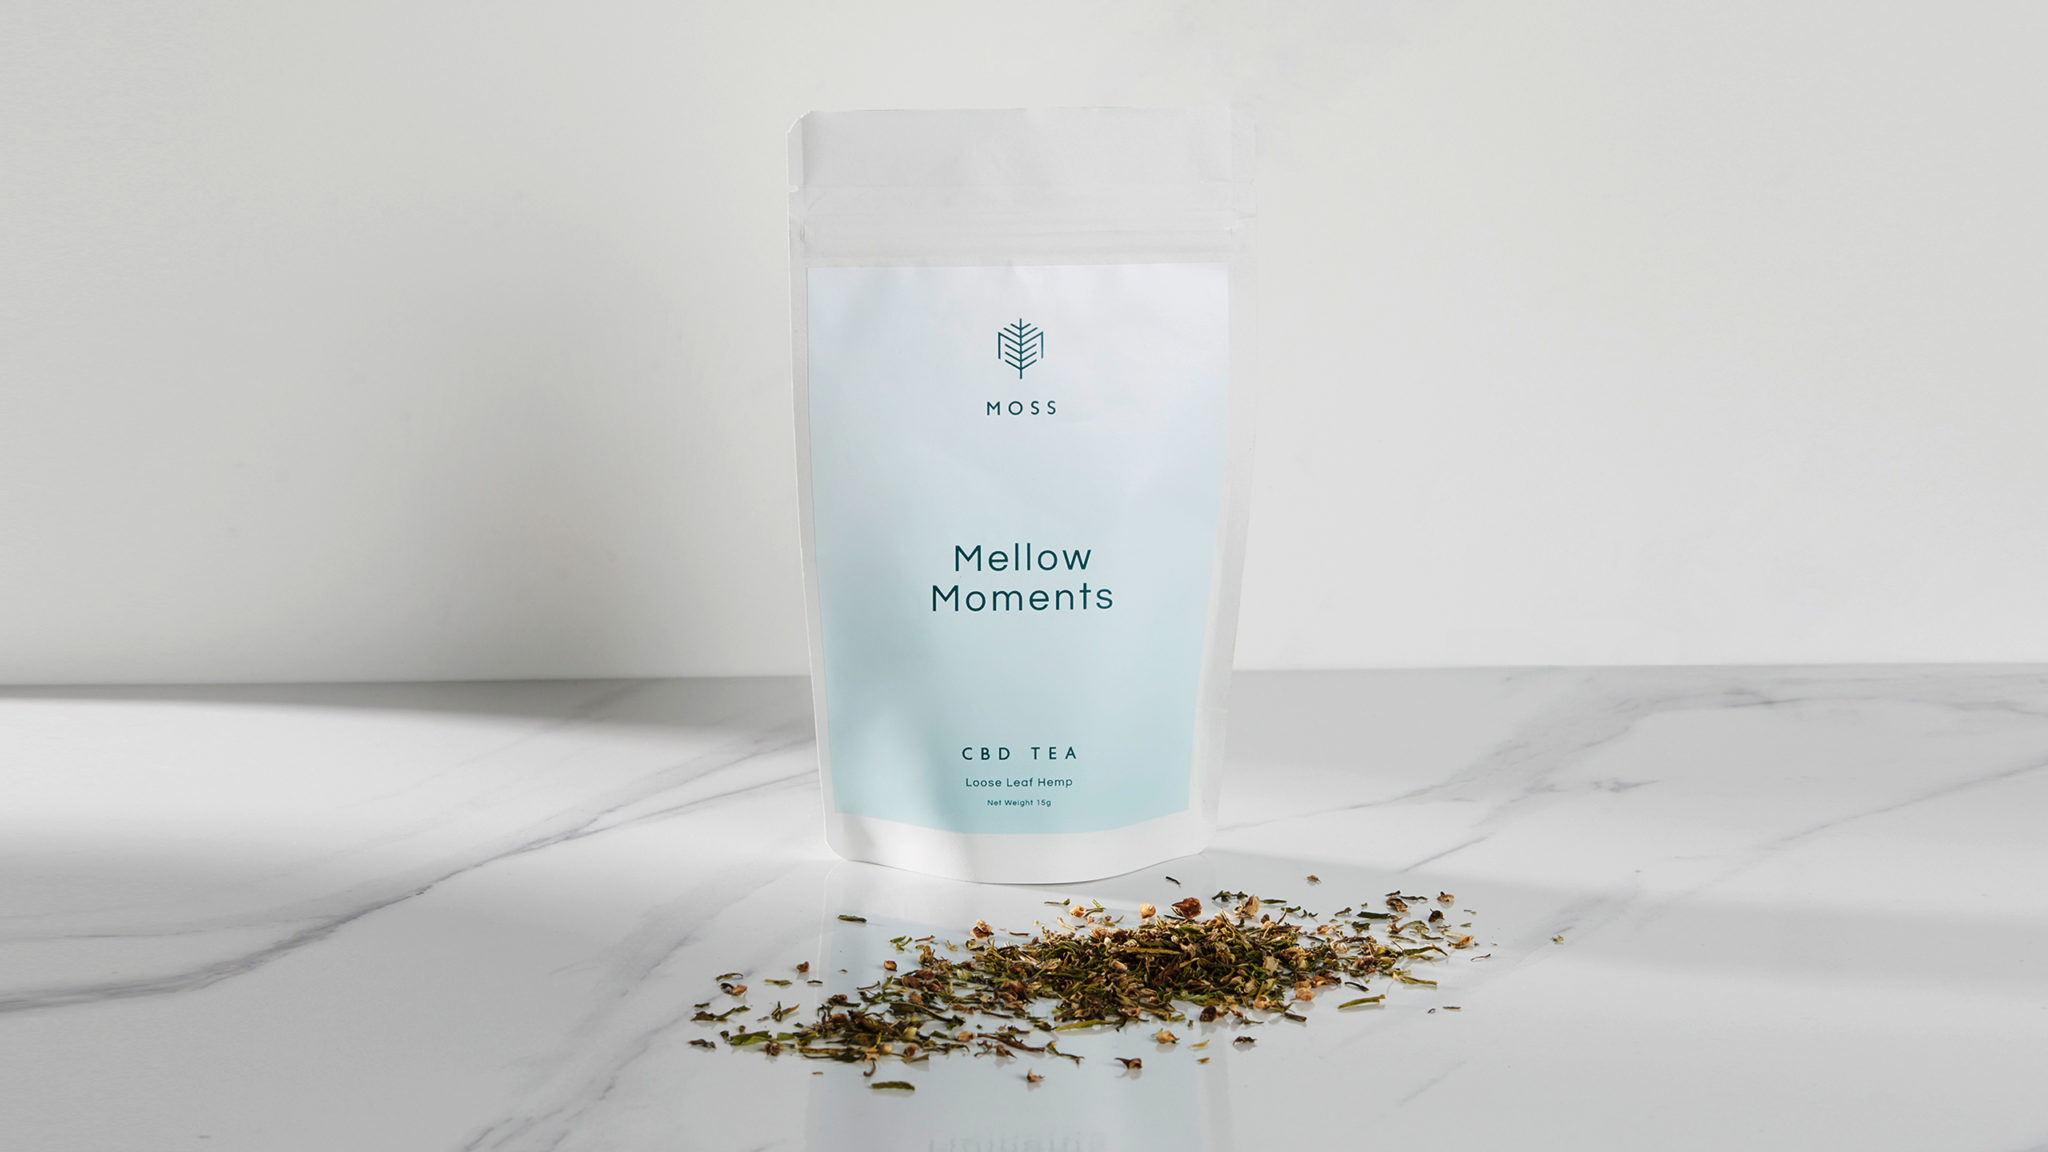 Moss Branding, CBD Tea Packaging